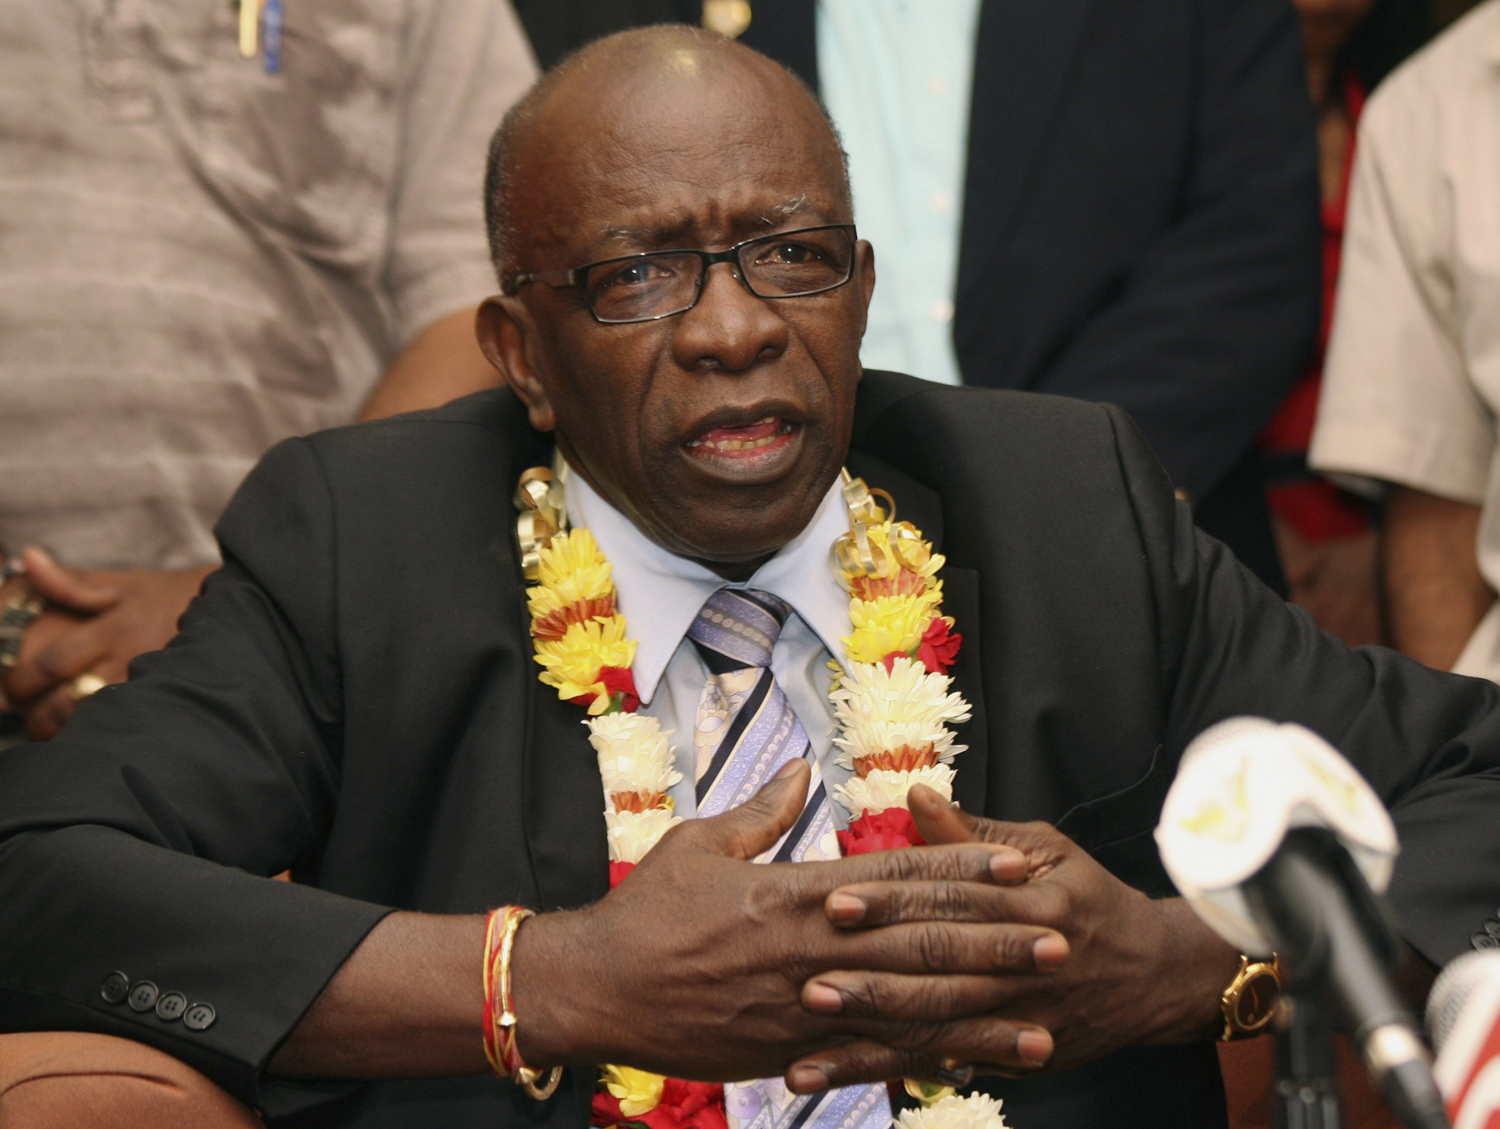 FIFA executive Jack Warner gestures during a news conference held shortly after his arrival at the airport in Port-of-Spain, in his native Trinidad and Tobago on June 2, 2011.